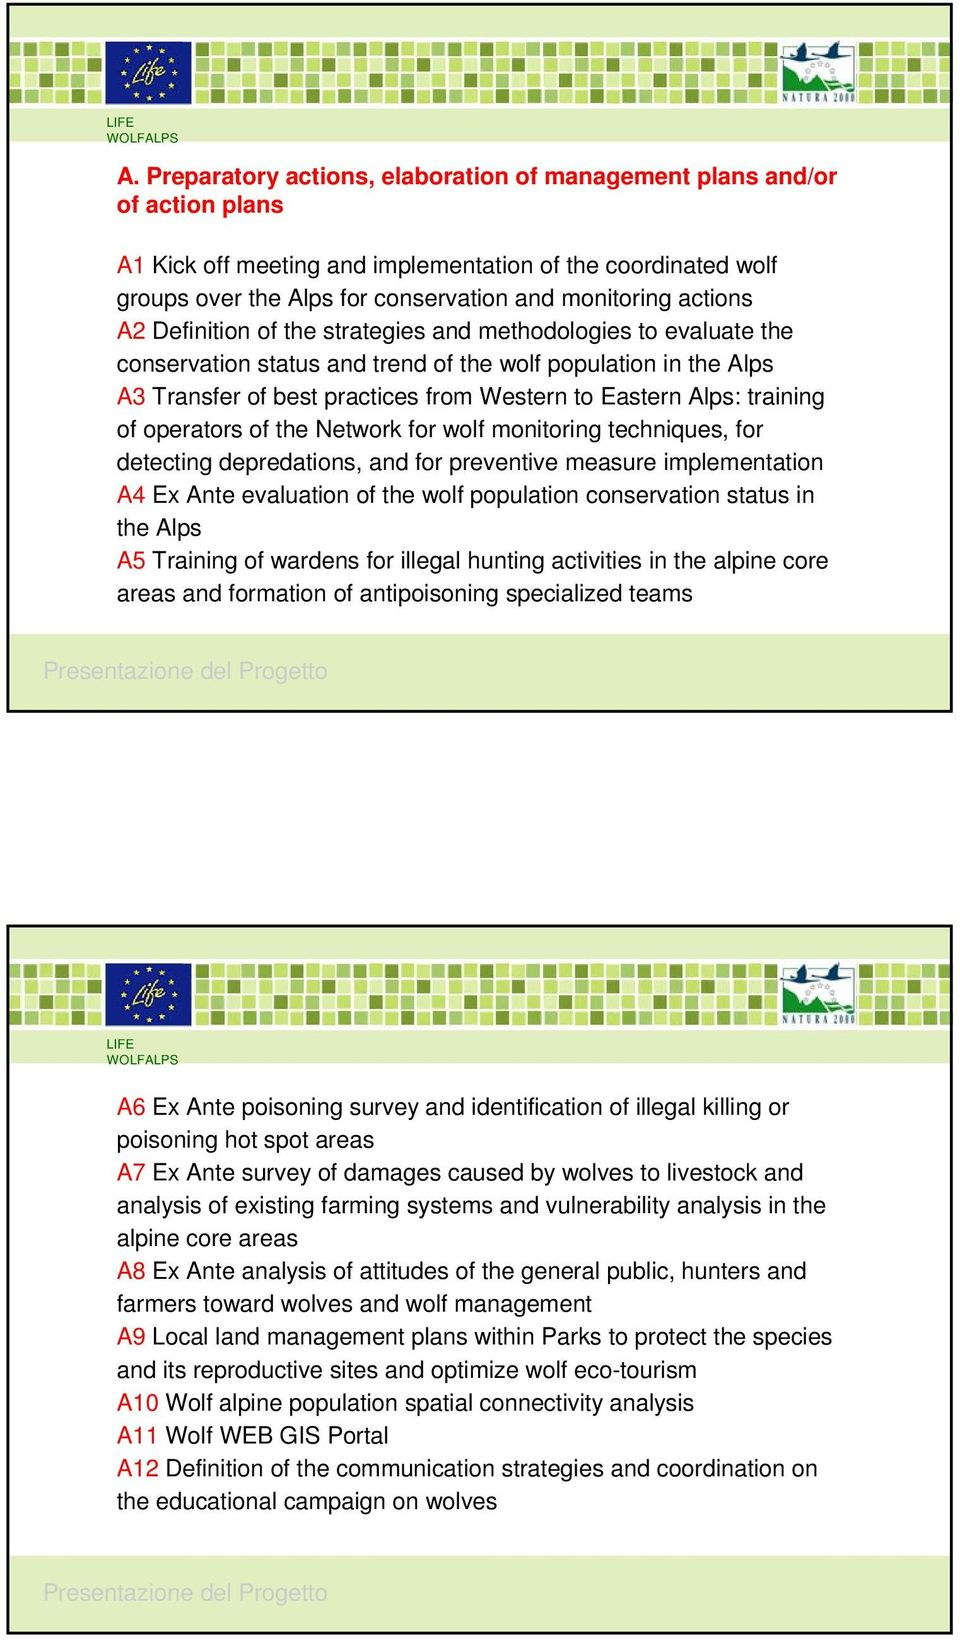 training of operators of the Network for wolf monitoring techniques, for detecting depredations, and for preventive measure implementation A4 Ex Ante evaluation of the wolf population conservation